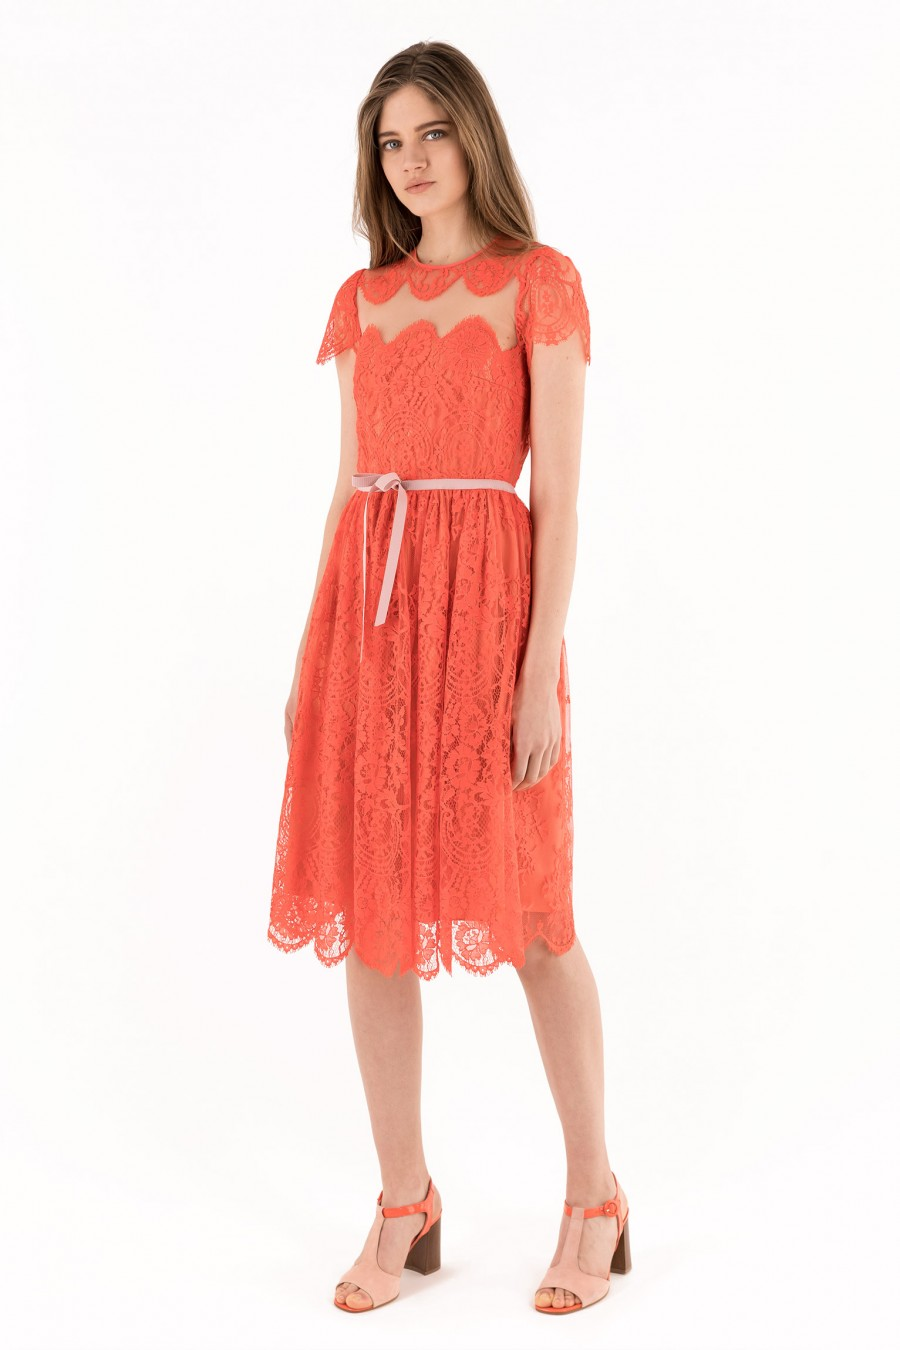 Made in Italy lace dress